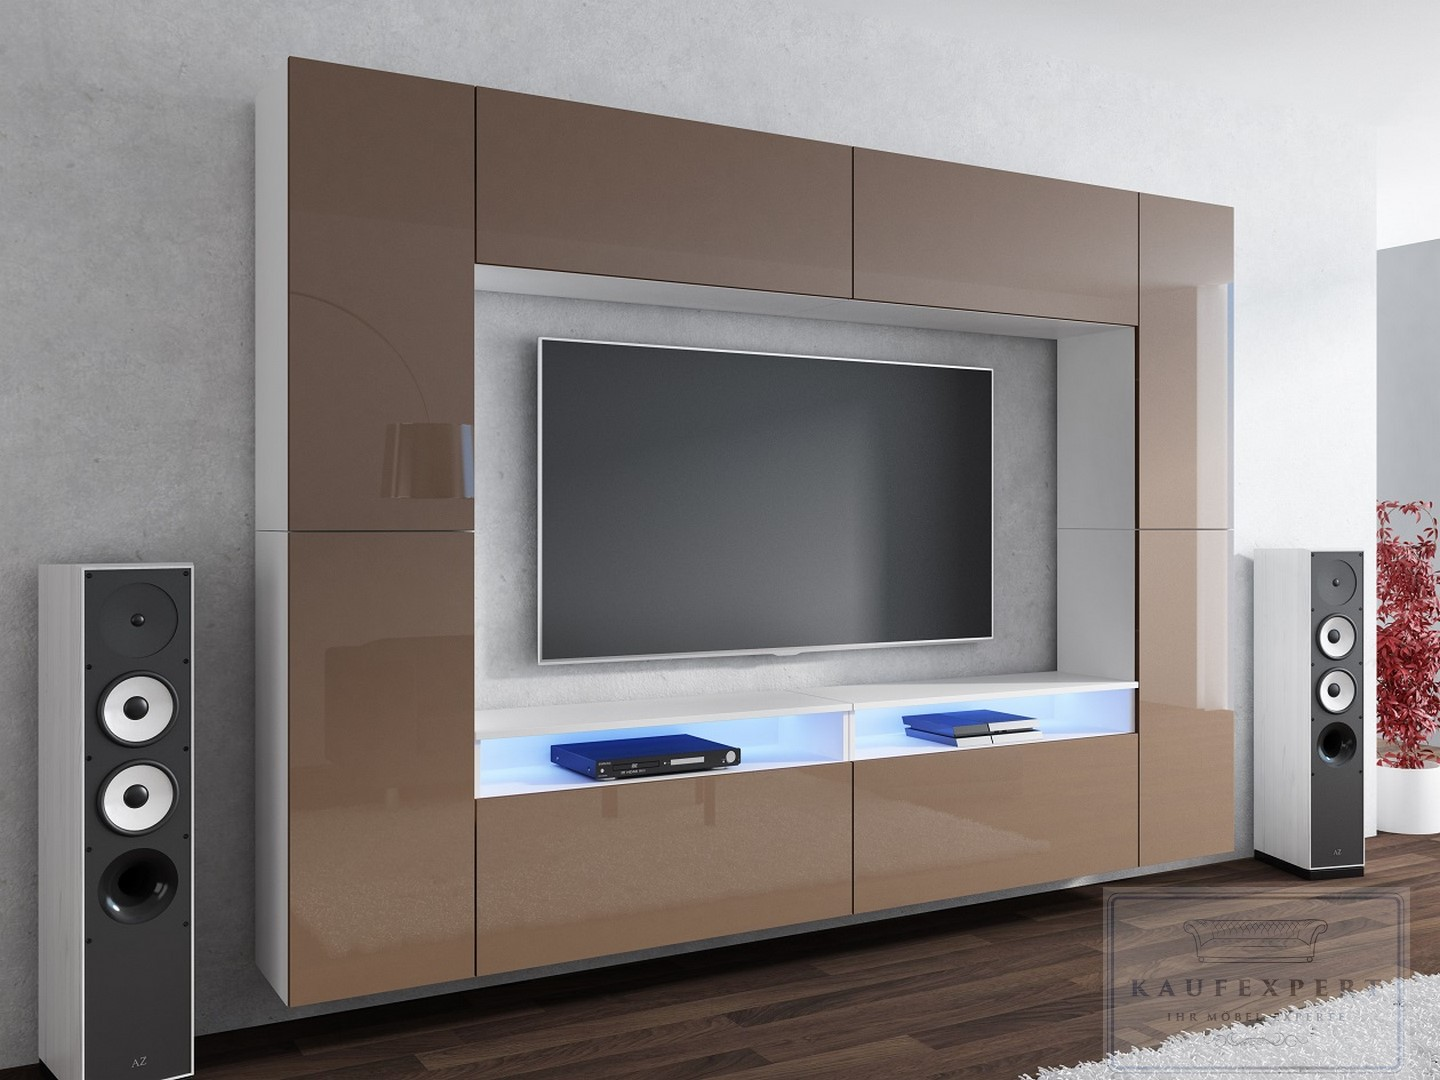 wohnwand design modern led beleuchtung hochglanz concept orion lofter mediawand ebay. Black Bedroom Furniture Sets. Home Design Ideas